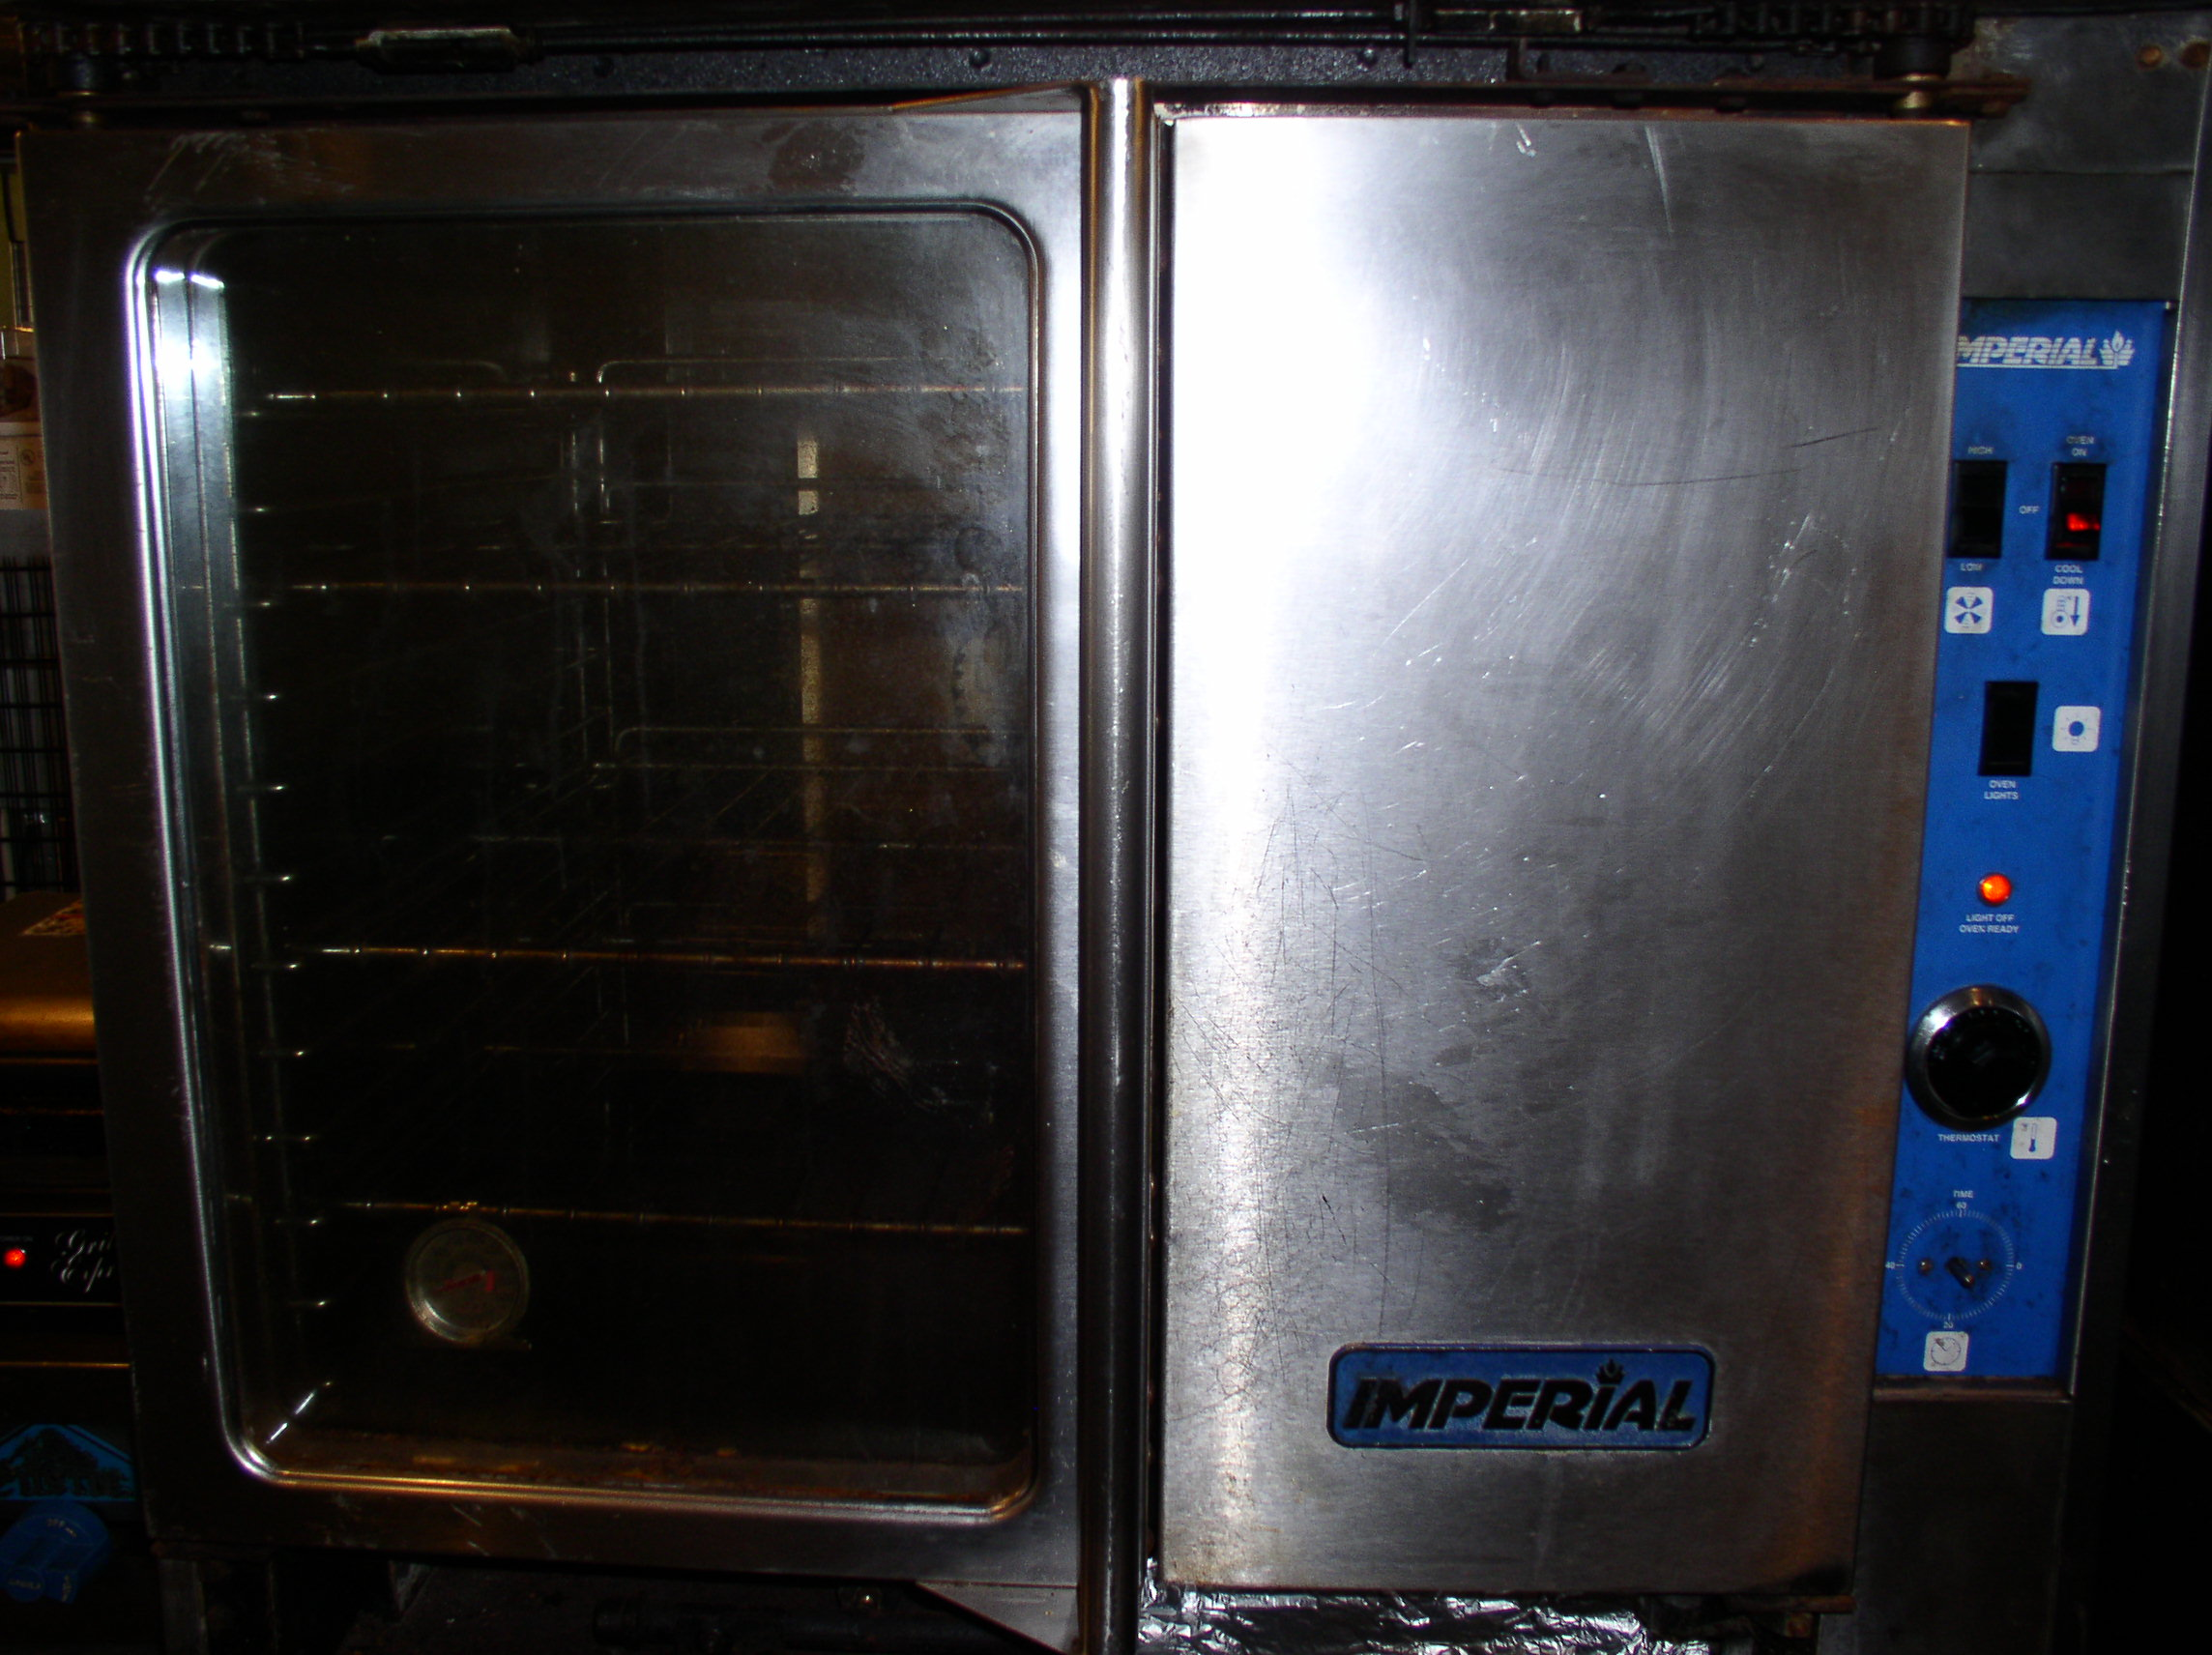 Why Imperial Convection Oven Burners Take Very Long Time